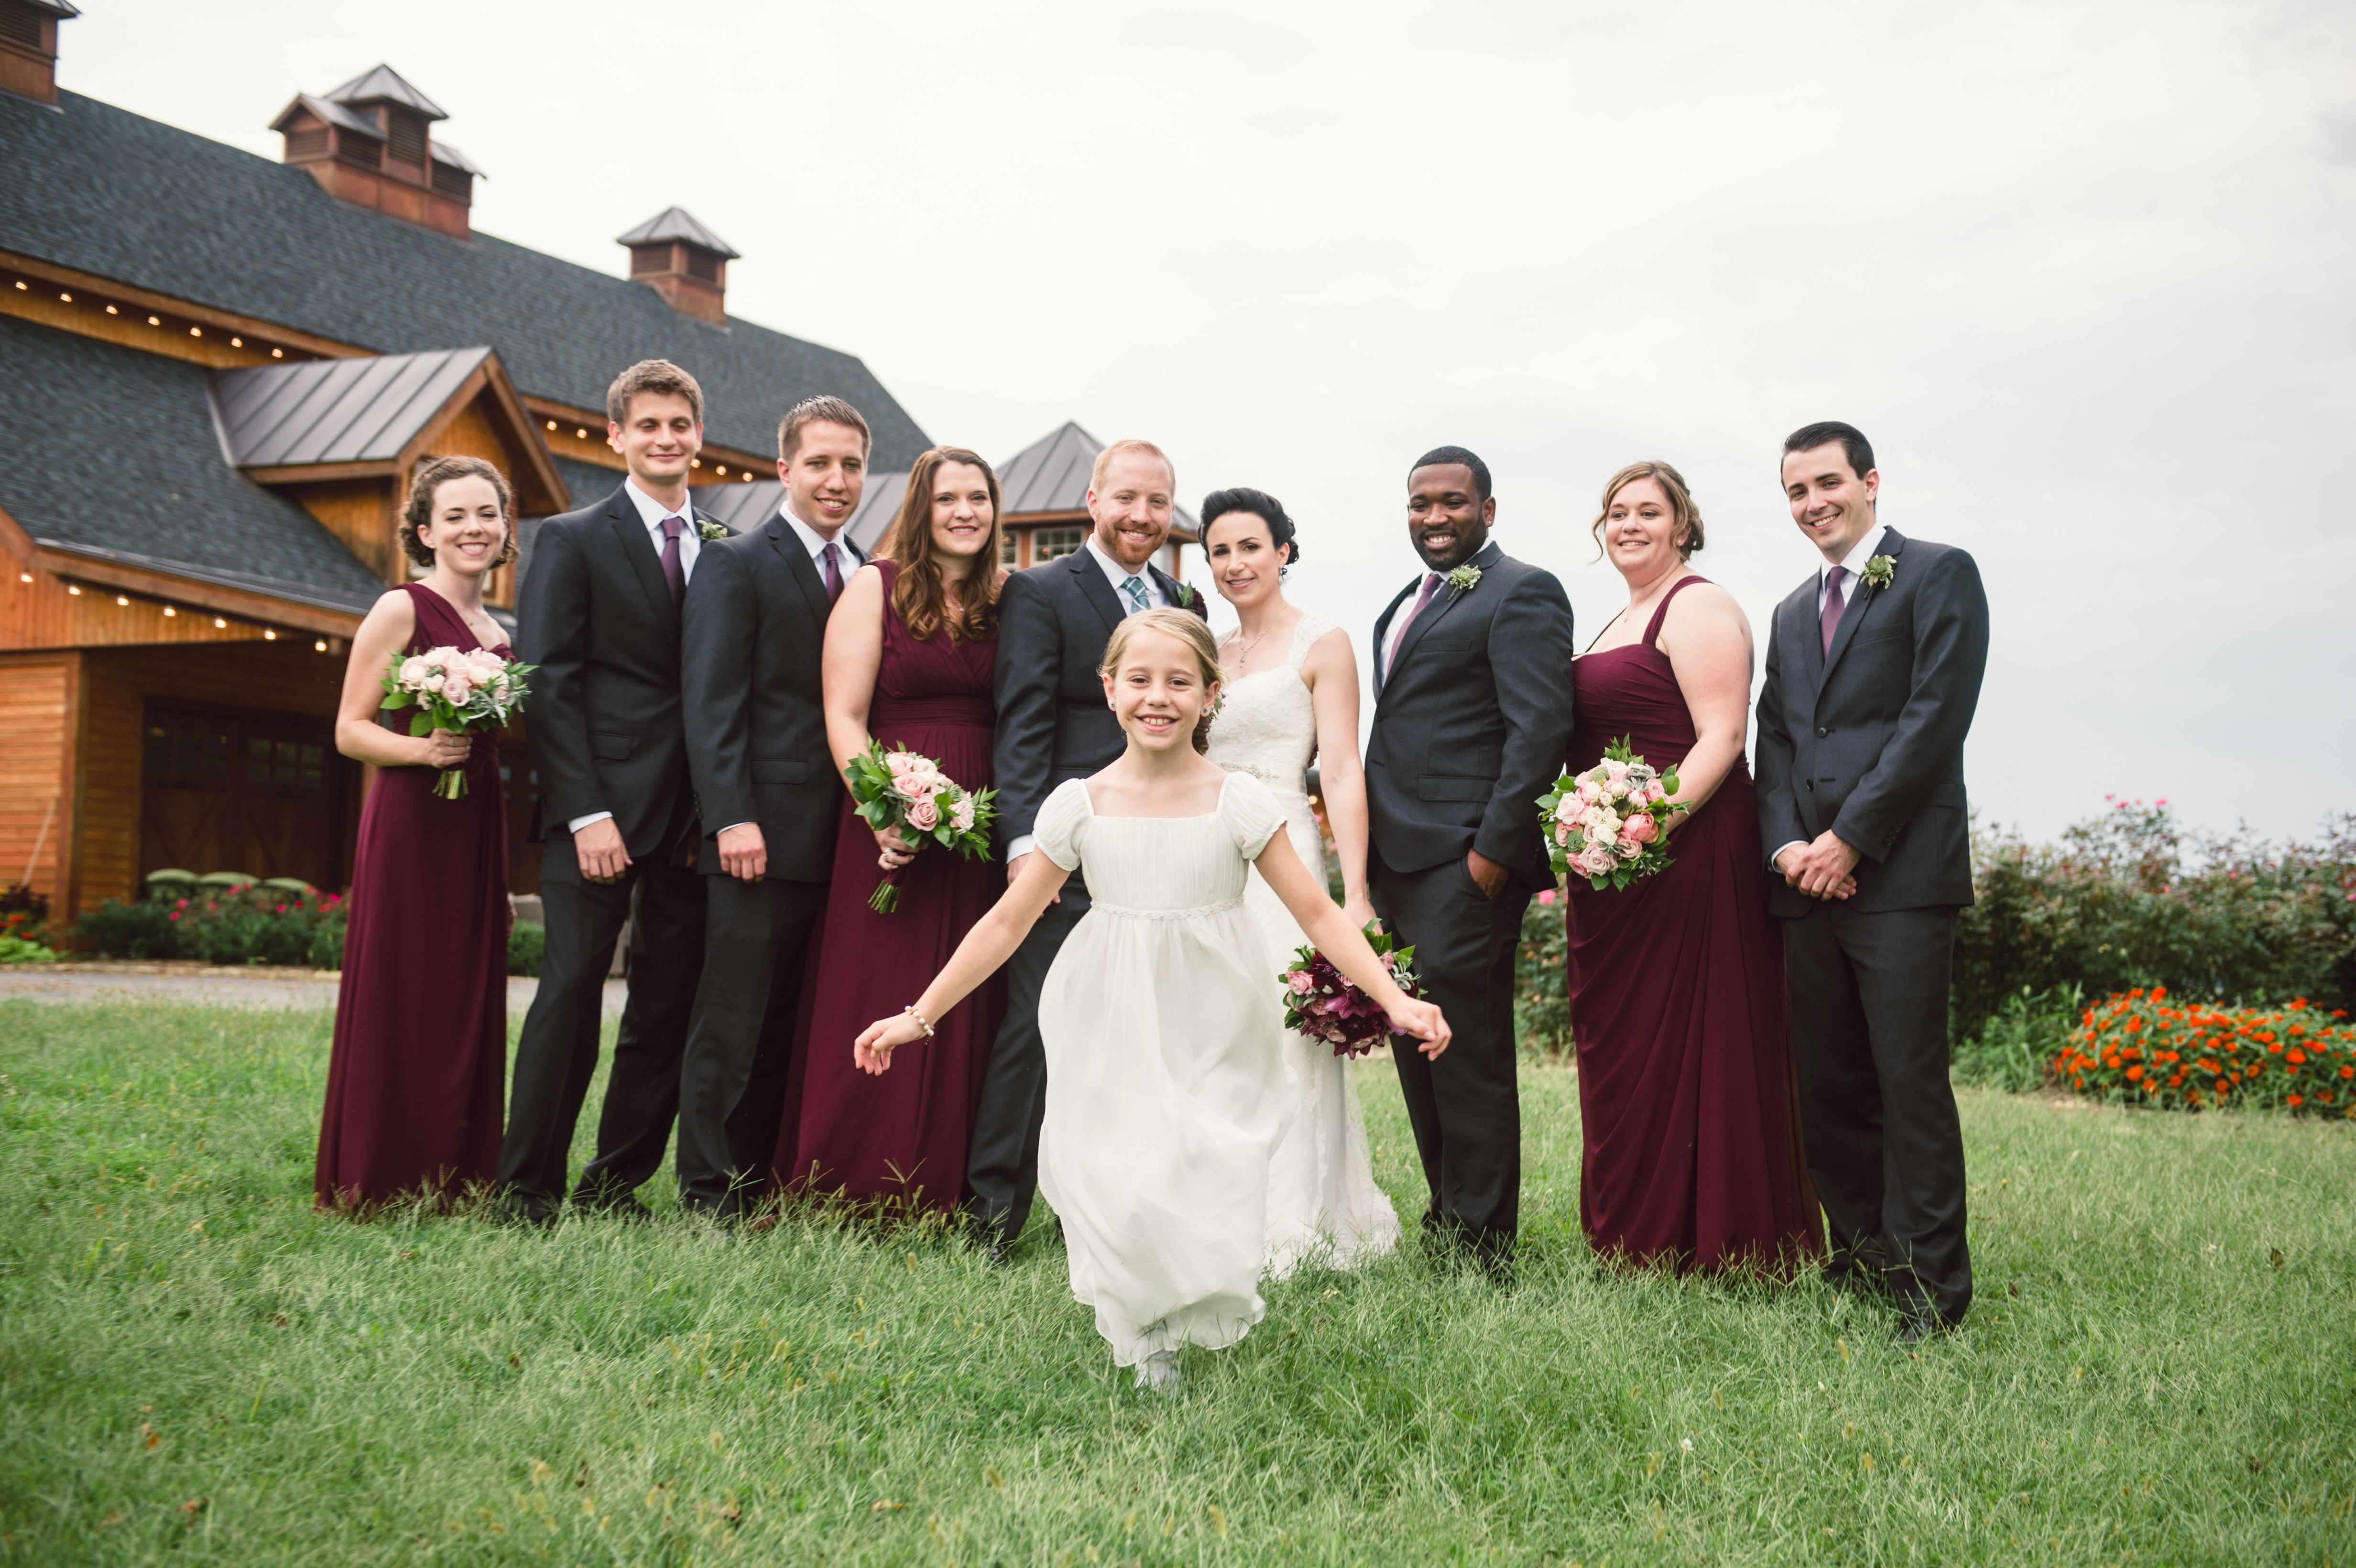 Wedding Party in Charcoal Gray and Burgundy WEDDING